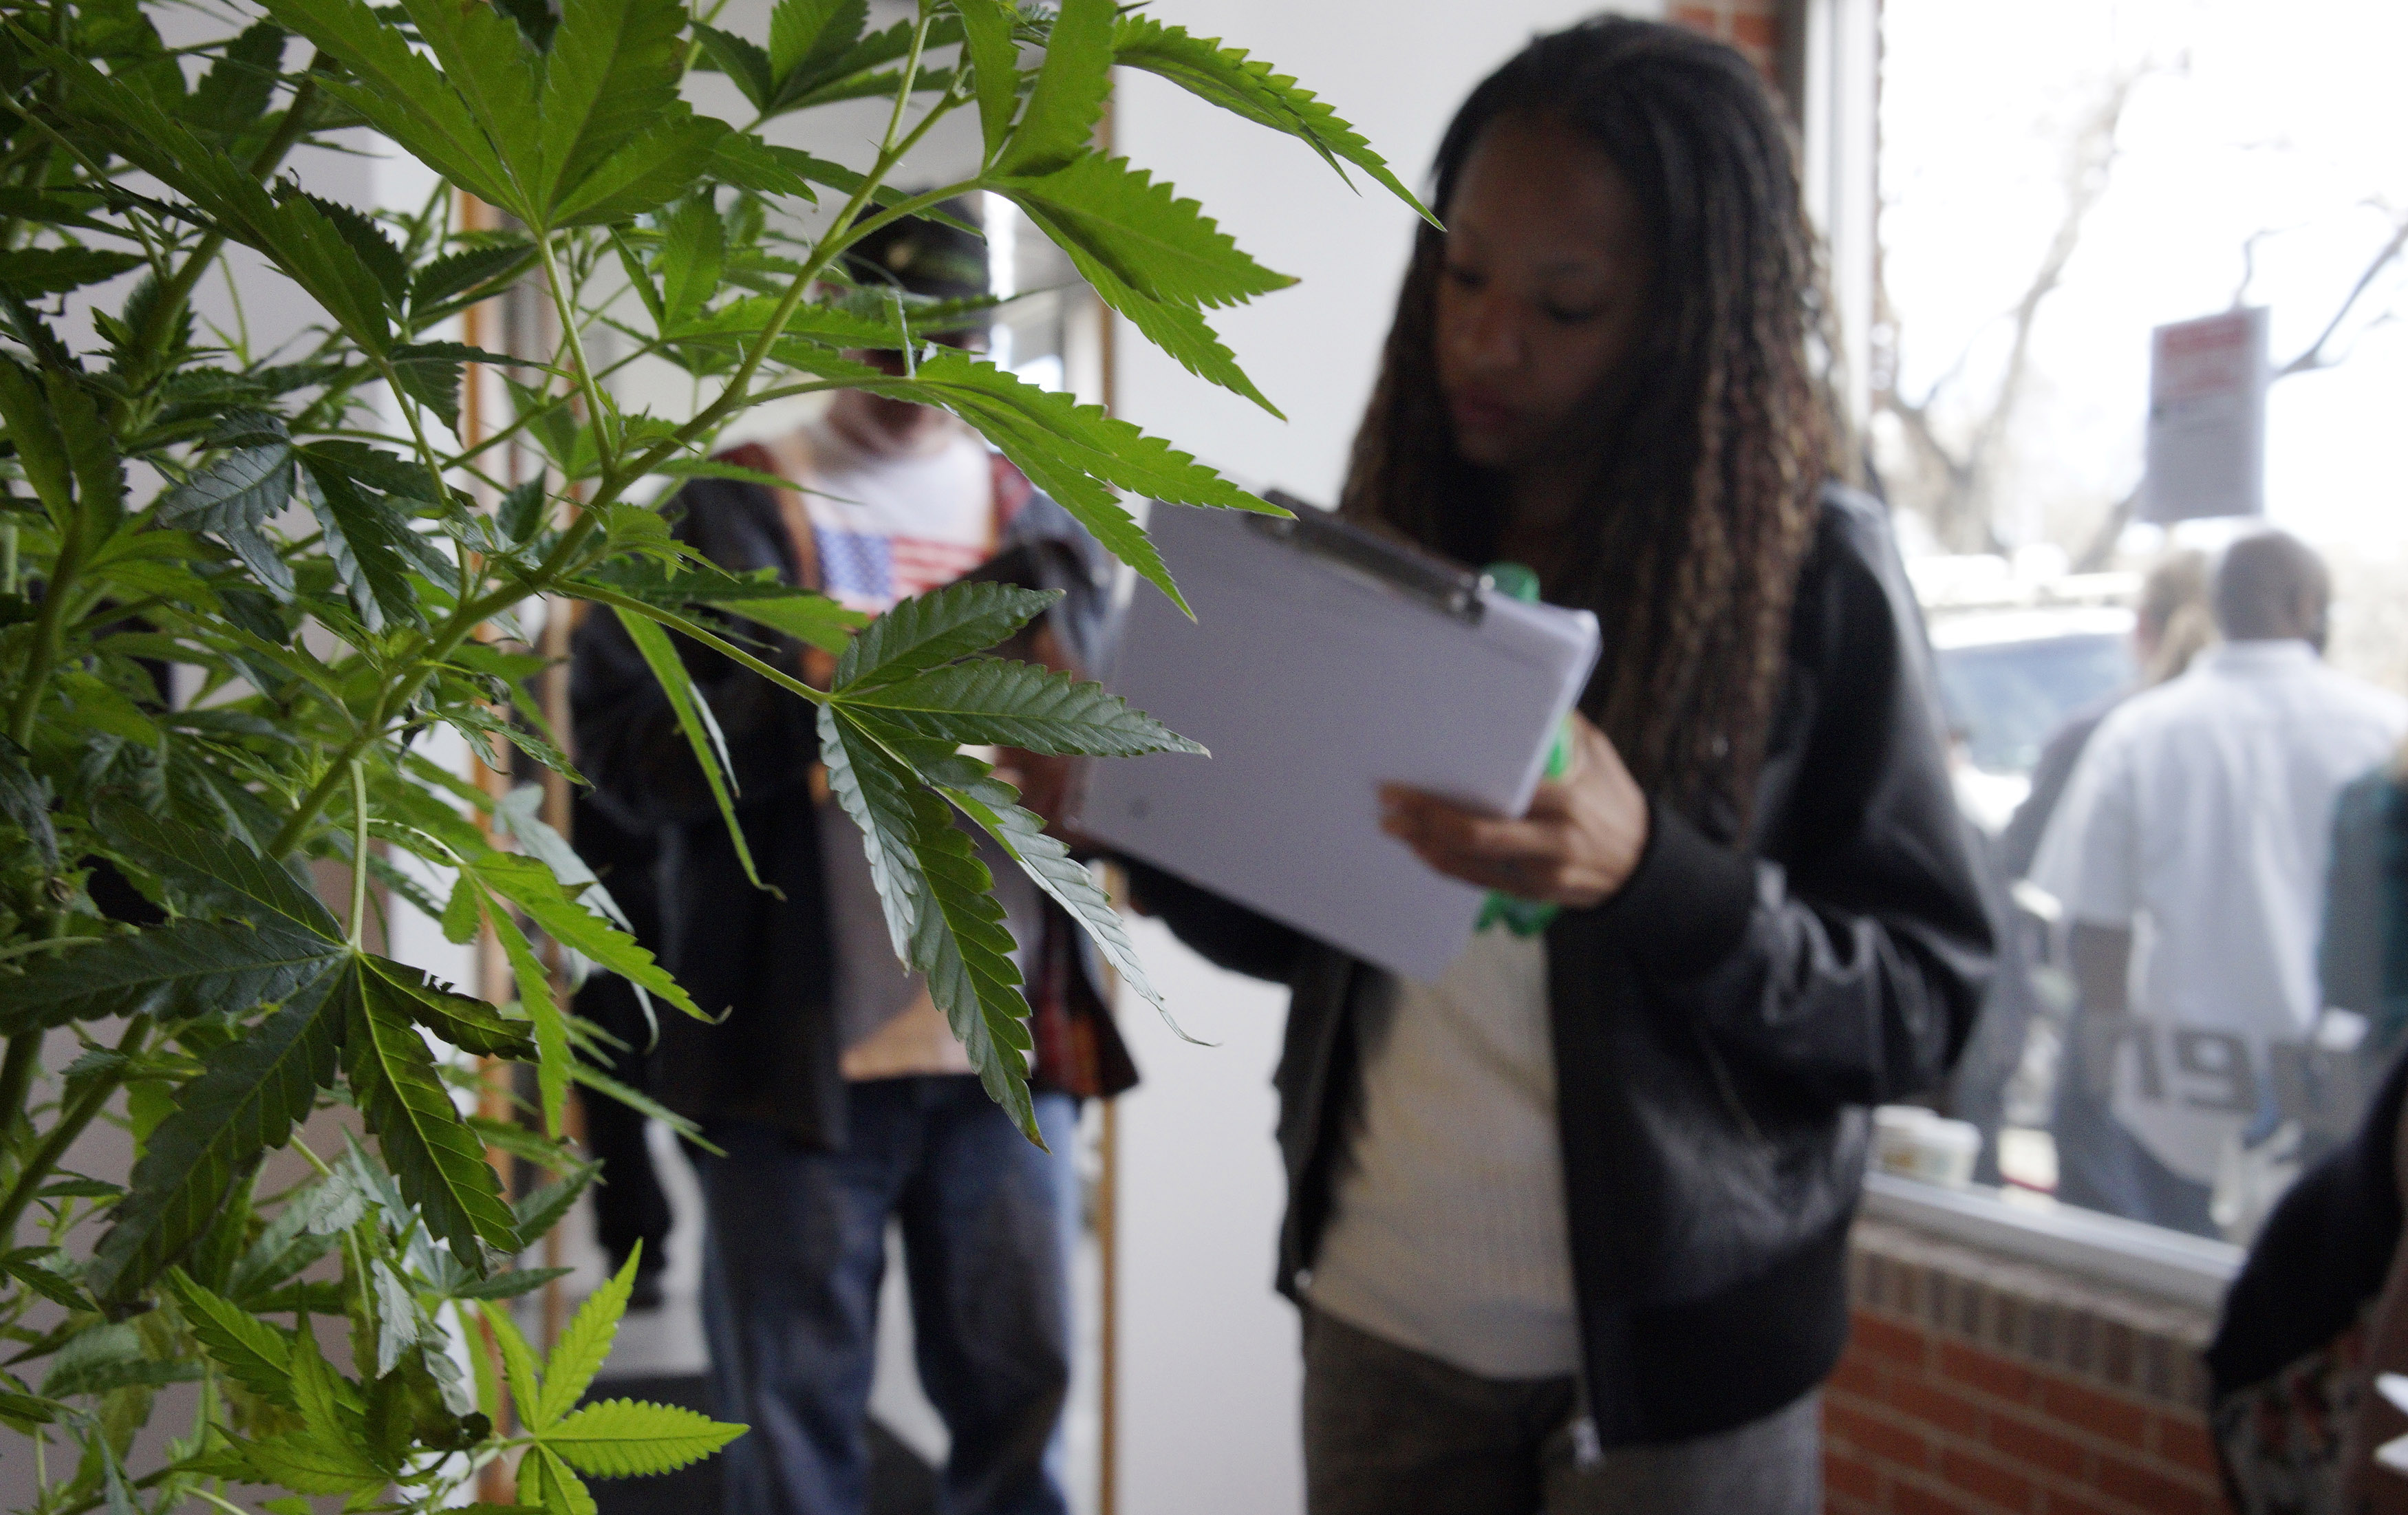 A woman obscured by a cannabis plant looks at a clipboard.